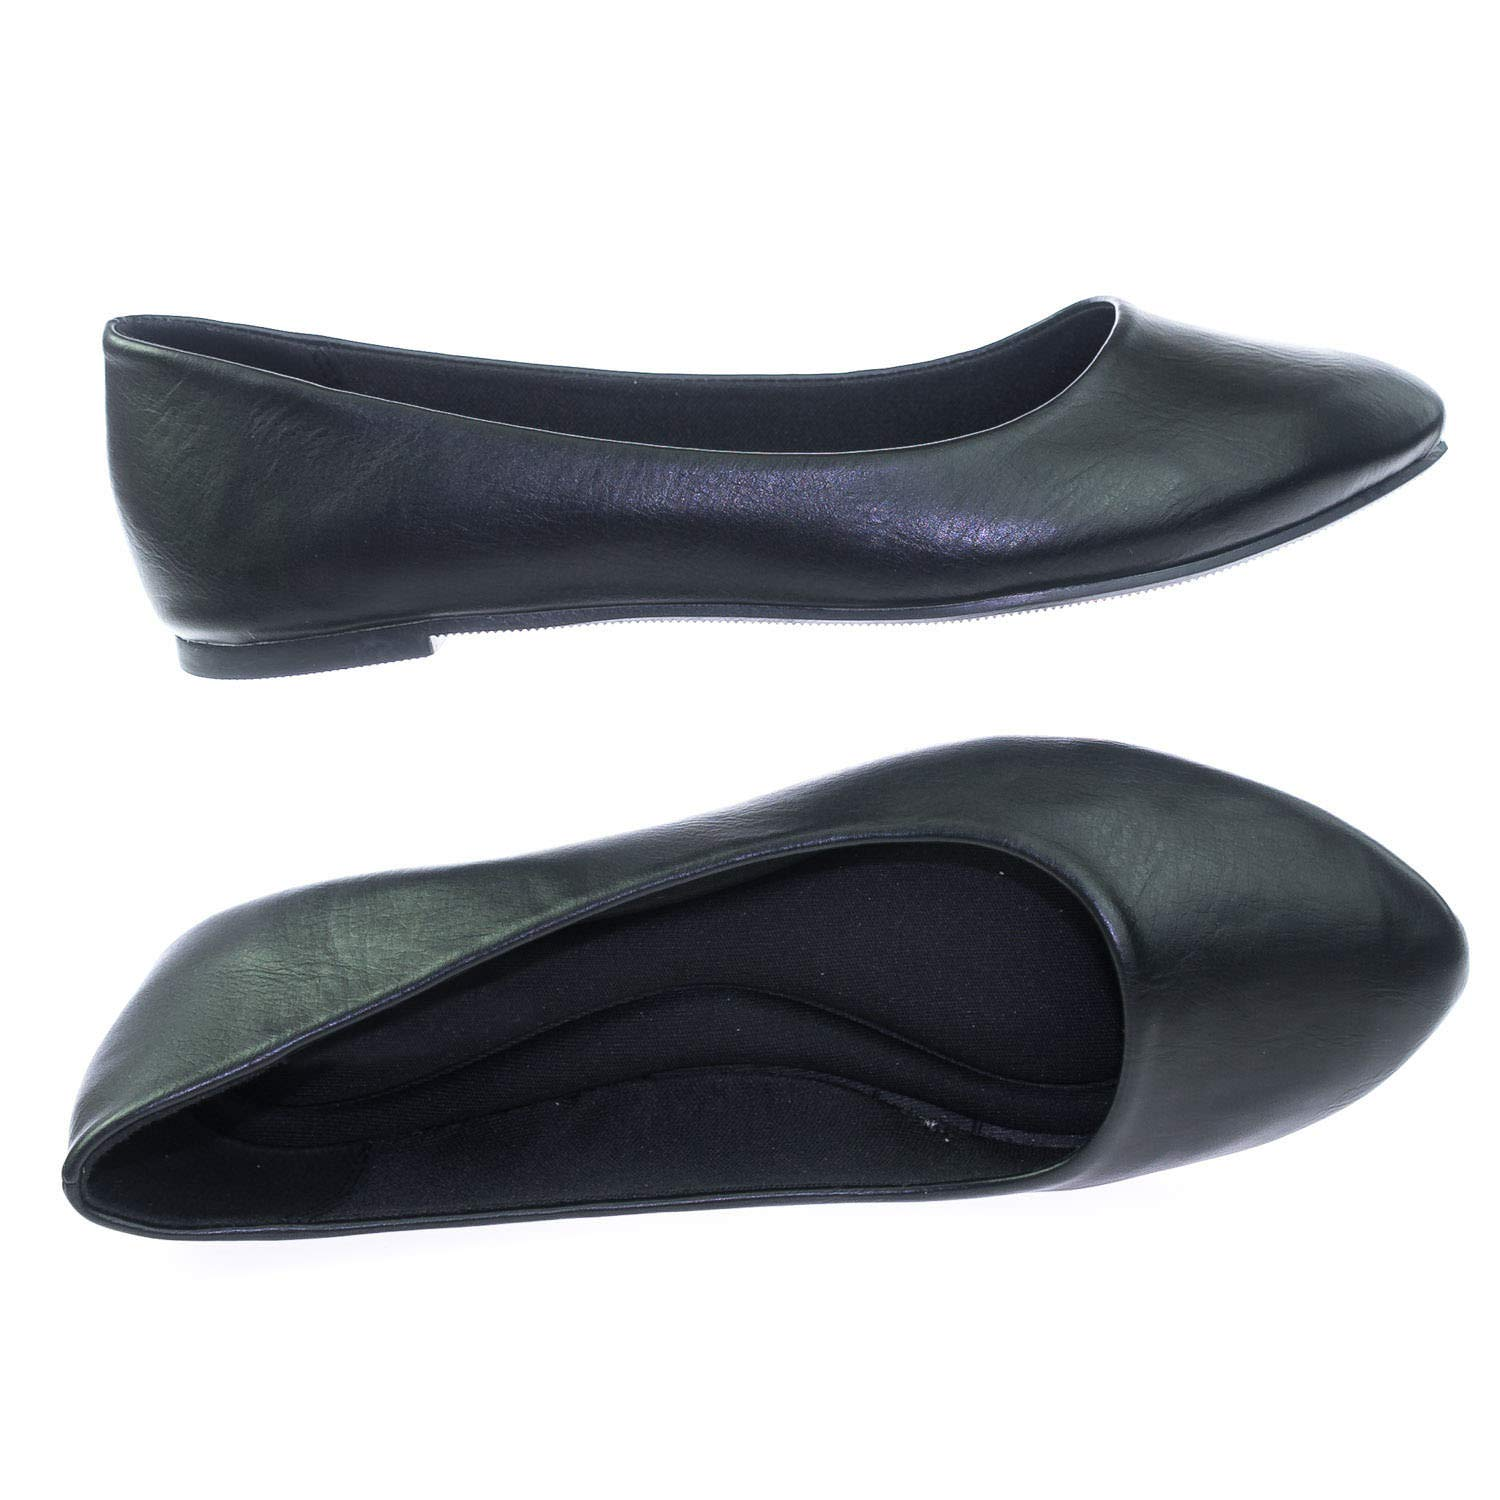 SODA Womens Almond Toe Ballet Flats w Comfortable Padded Insole